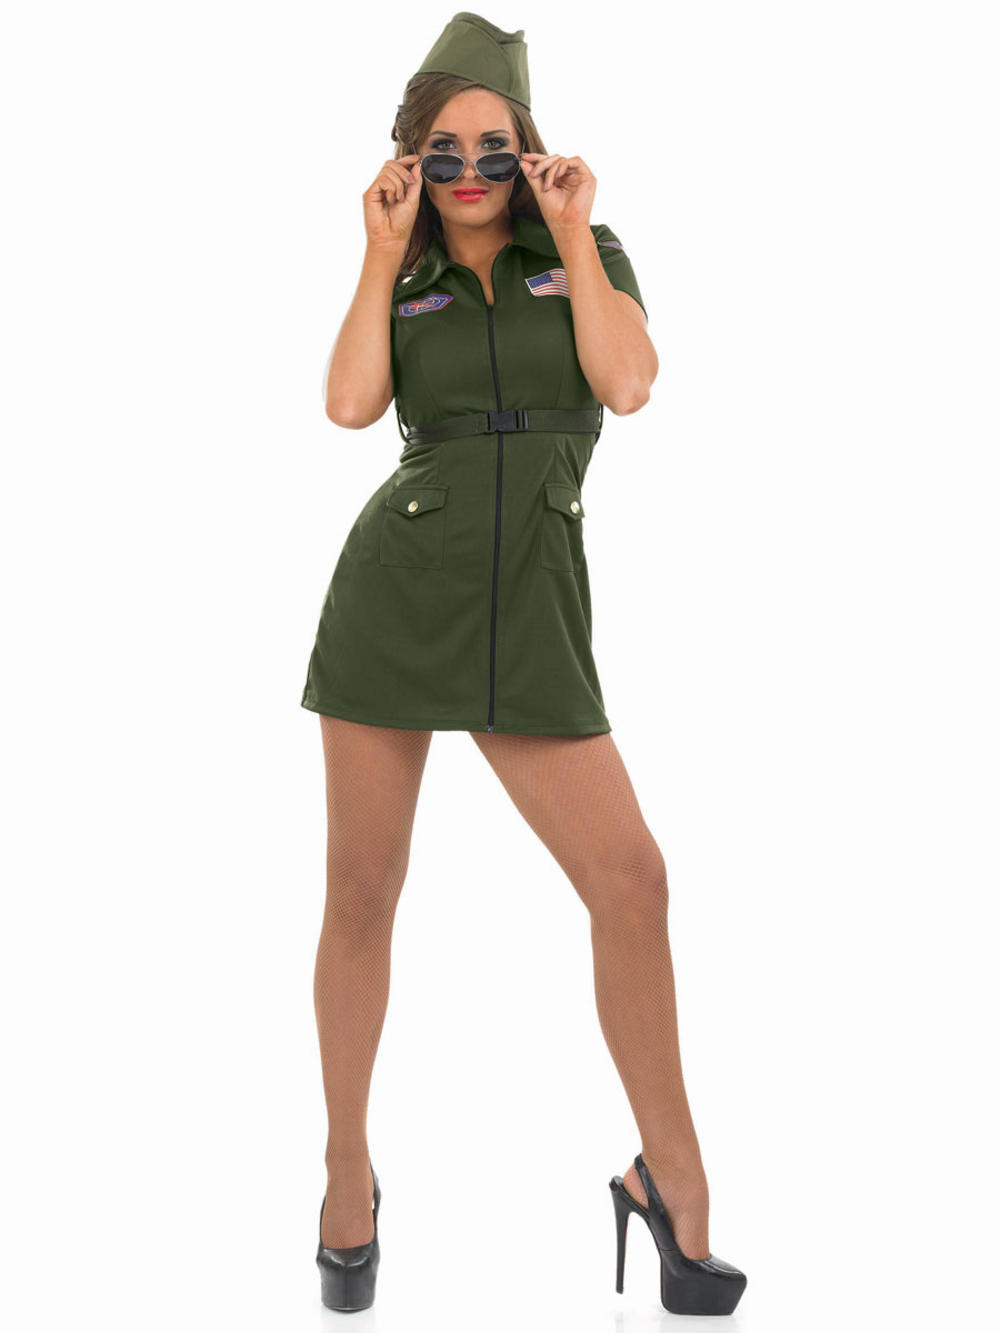 Aviator Girl Costume